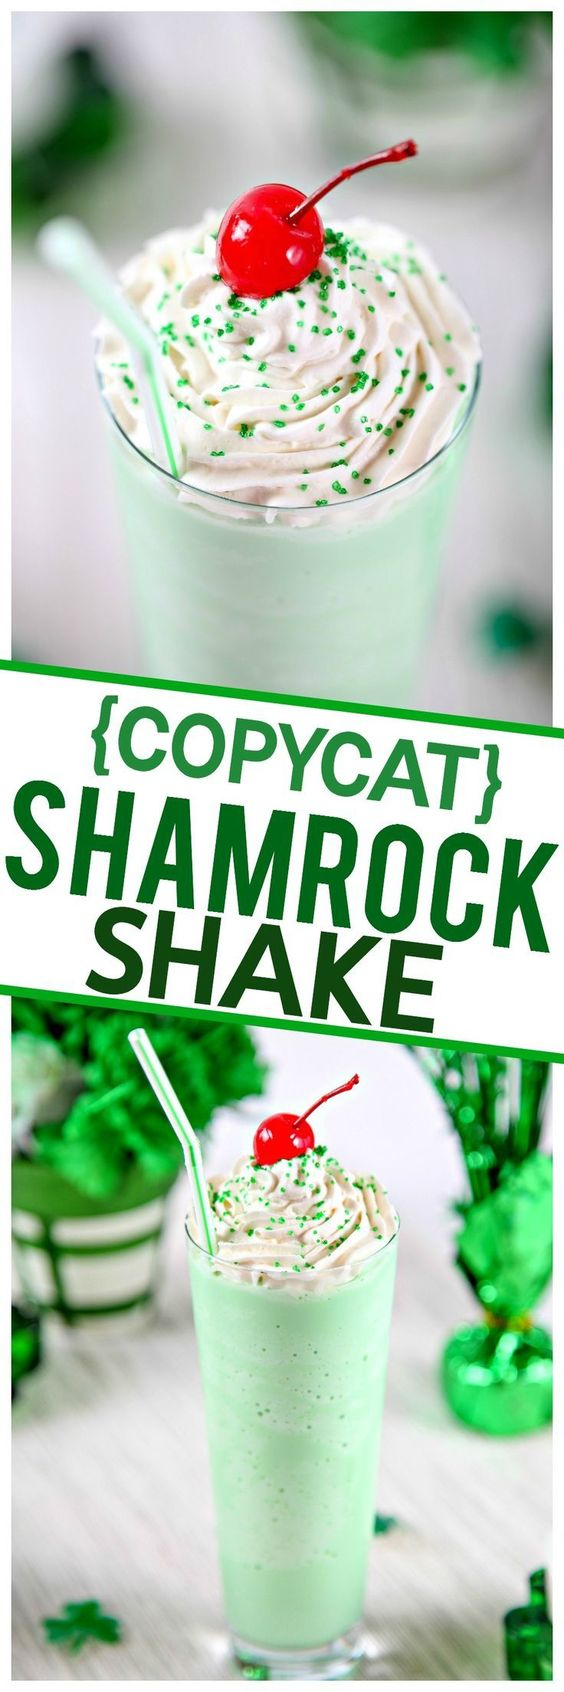 {COPYCAT} Homemade Shamrock Shake Recipe via Baking Beauty - Cool and creamy mint shake that tastes just like McDonald's Shamrock Shakes. Only 4 simple ingredients, no blender required! #easystpatricksdaydesserts #stpatricksday #stpatricksdayparty #stpatricksdaypartyfood #lucky #luckygreen #luckytreats #shamrocks #clovers #rainbowtreats #leprechantreats